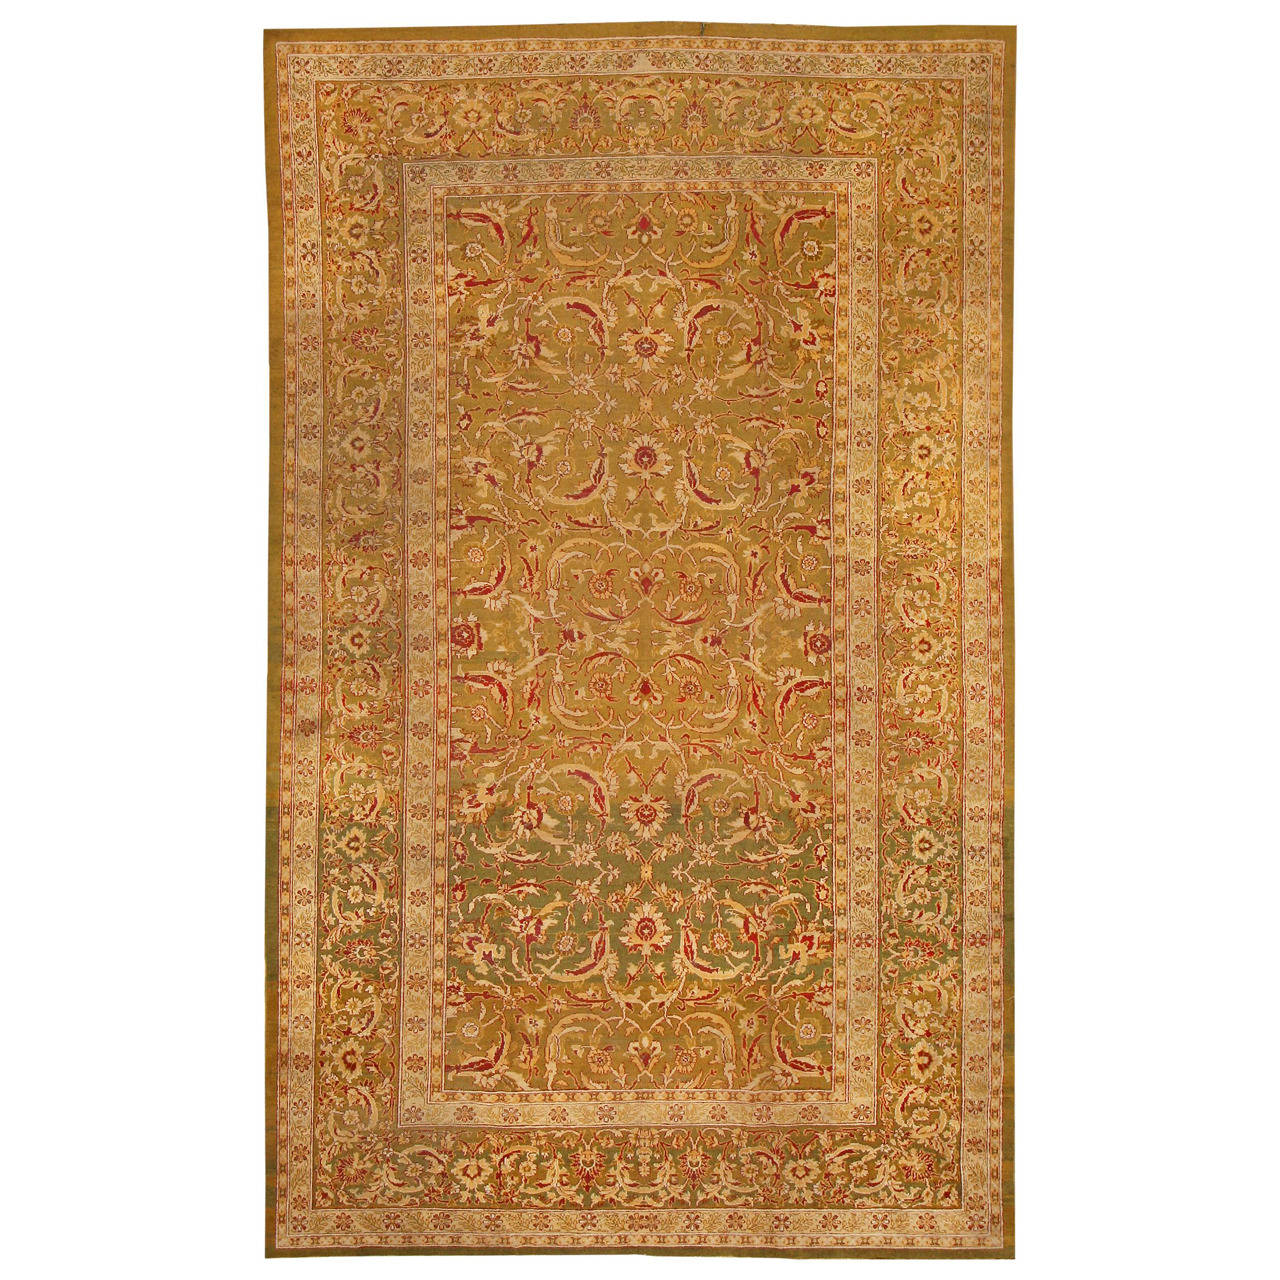 Rugs Made In India For Sale: Antique Amritsar Rug From North India For Sale At 1stdibs